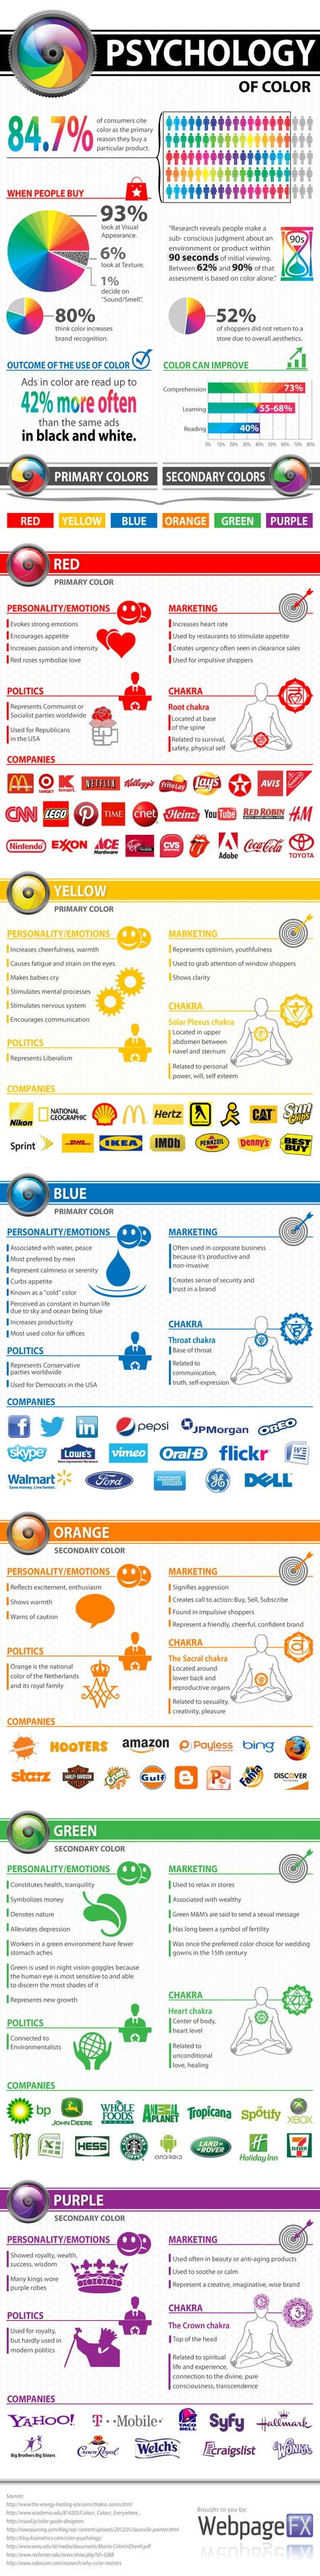 The Psychology of Color in Marketing Perhaps no choice is as vital to marketing success as the colors you use. Whether selecting the color for a specific product or for a email marketing campaign, there is no doubt that color has significant effect on all as subconsciously, we associate different colors with different things. http://smallbiztrends.com/2013/04/psychology-of-color-infographic.html